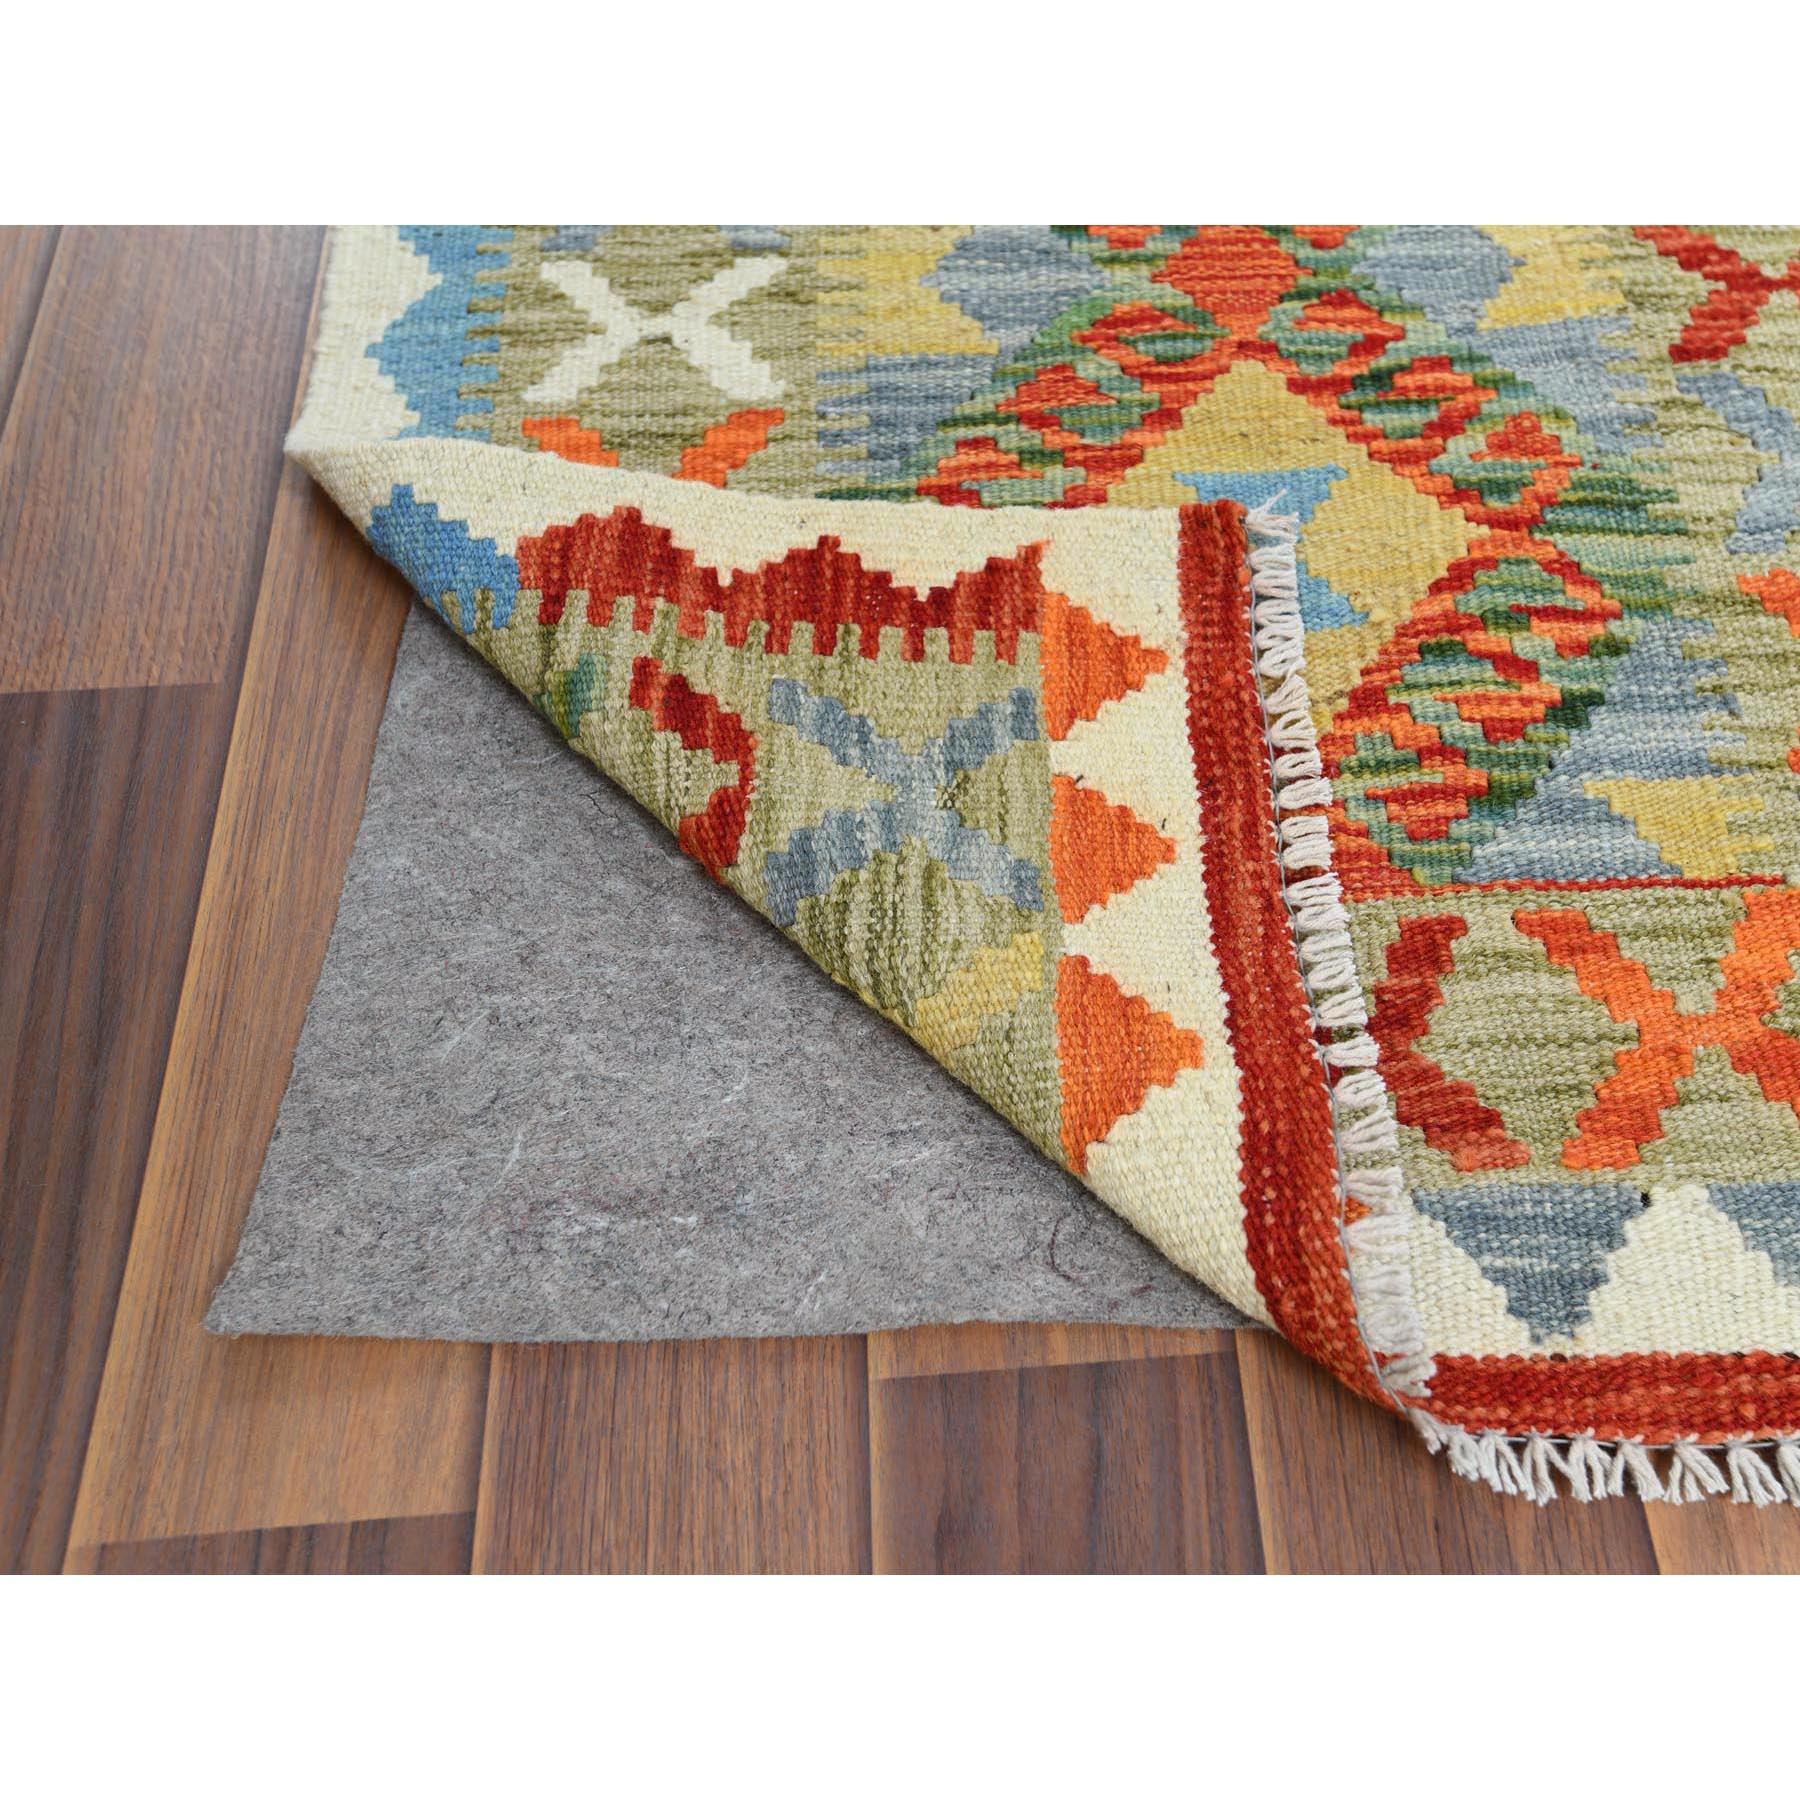 "2'x2'9"" Hand Woven Green With Vibrant Colors Geometric Design Pure Wool Reversible Flat Weave Afghan Kilim Oriental Rug"